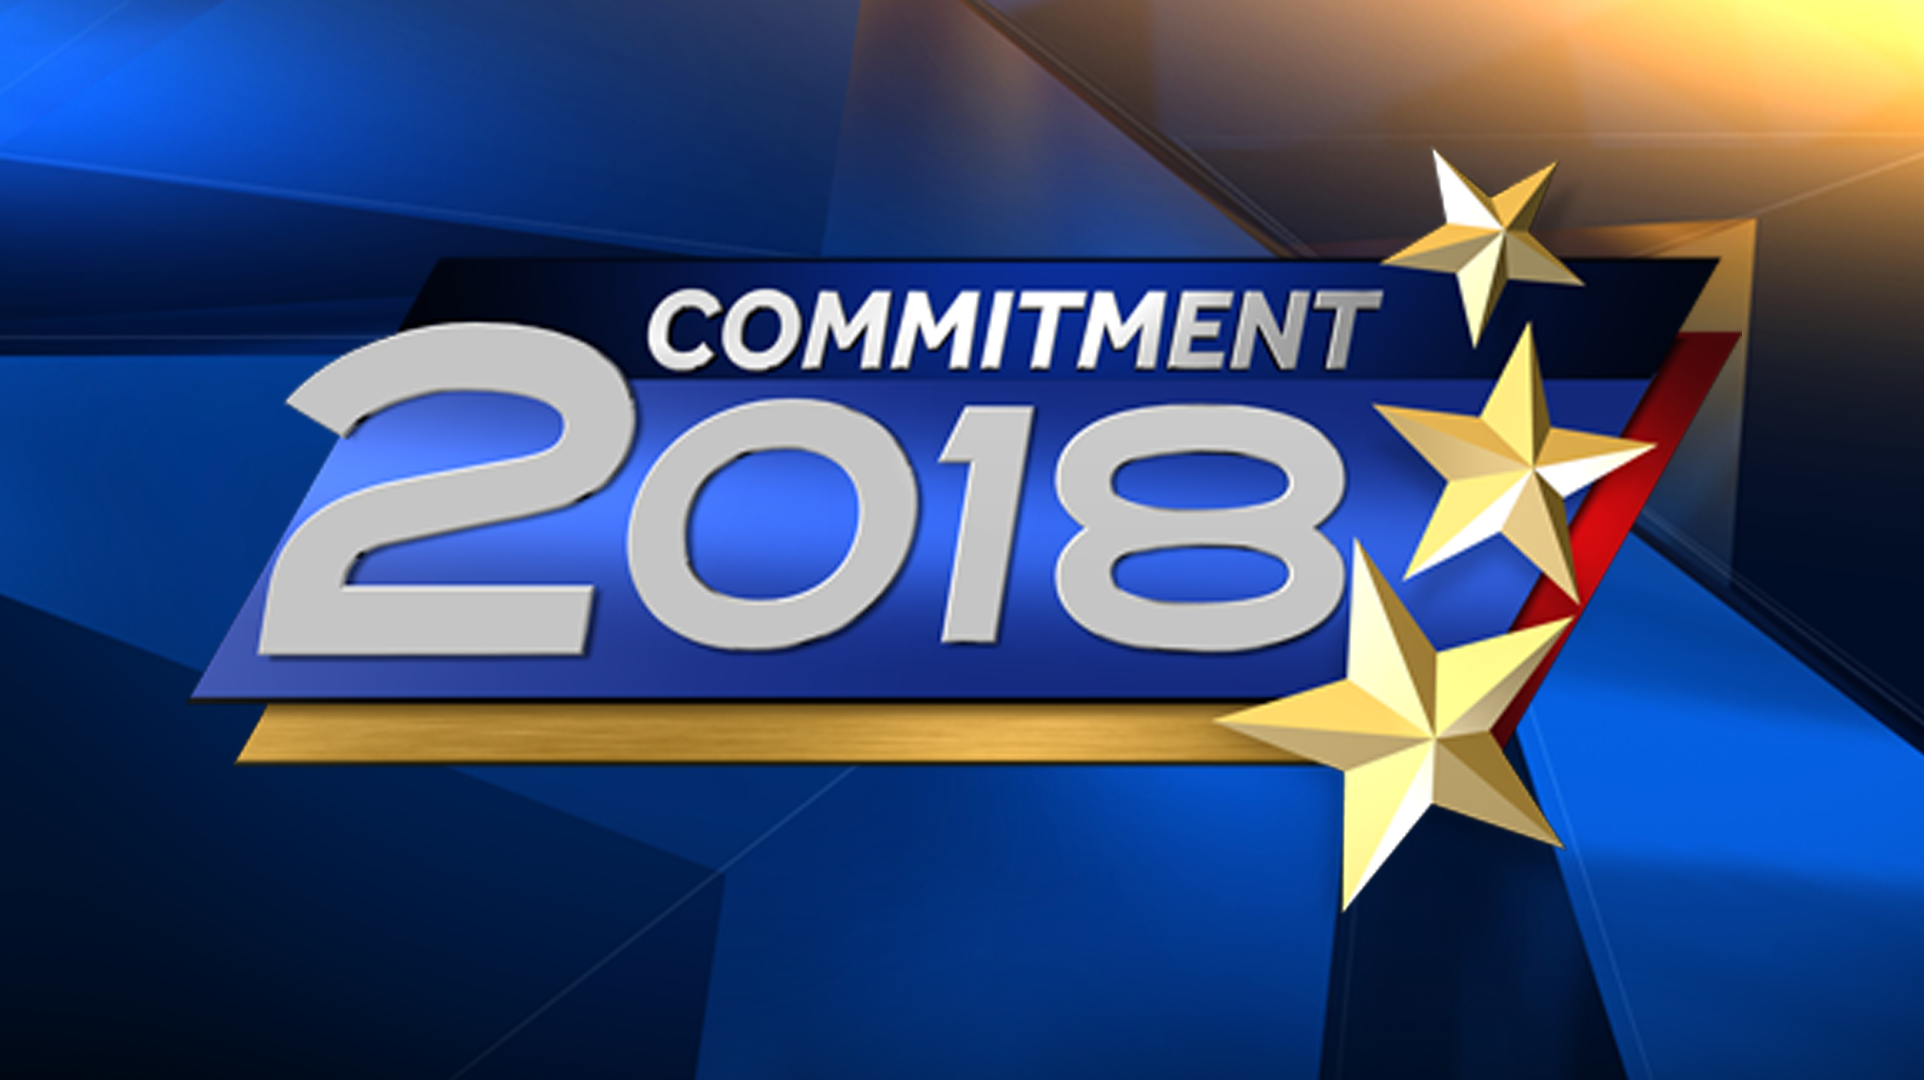 Commitment 2018: The issues impacting Western Pennsylvania and where candidates stand on them